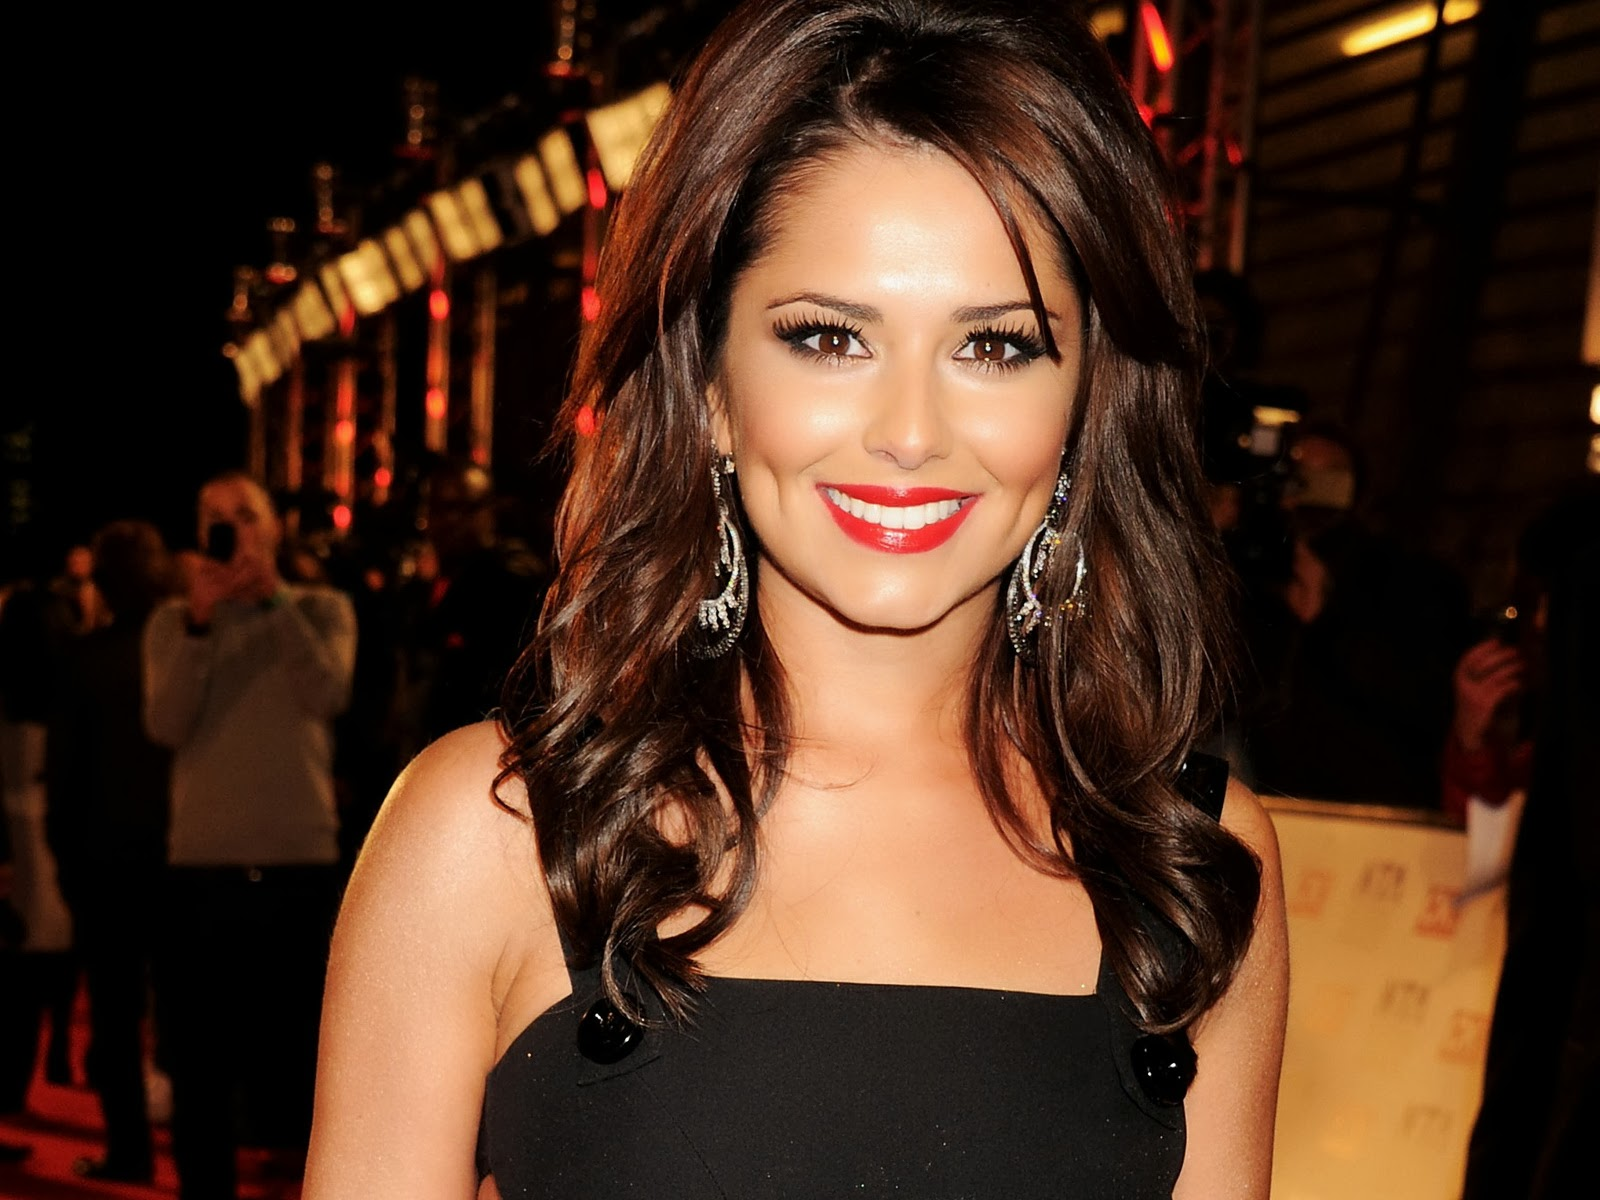 All Bollywood Girl Hd Wallpaper World Celebrities Cheryl Cole Profile Amp Pictures 2013